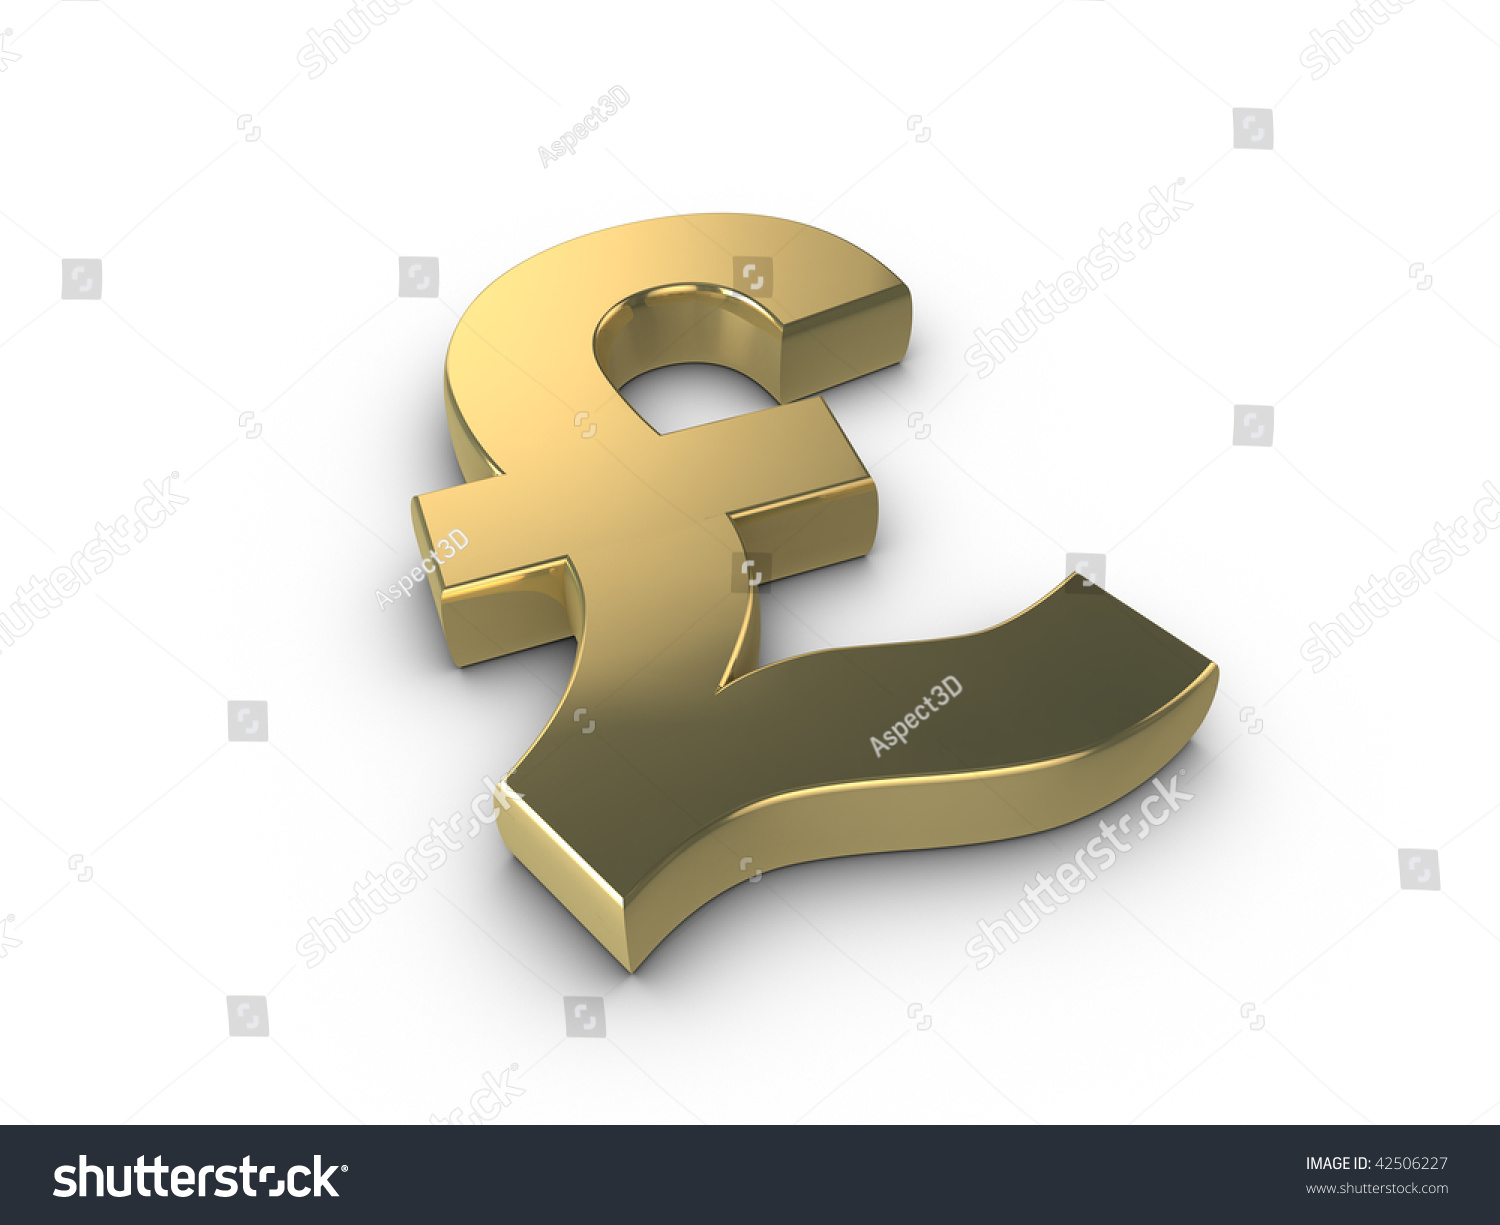 Symbol For British Pound Sterling Images Meaning Of This Symbol